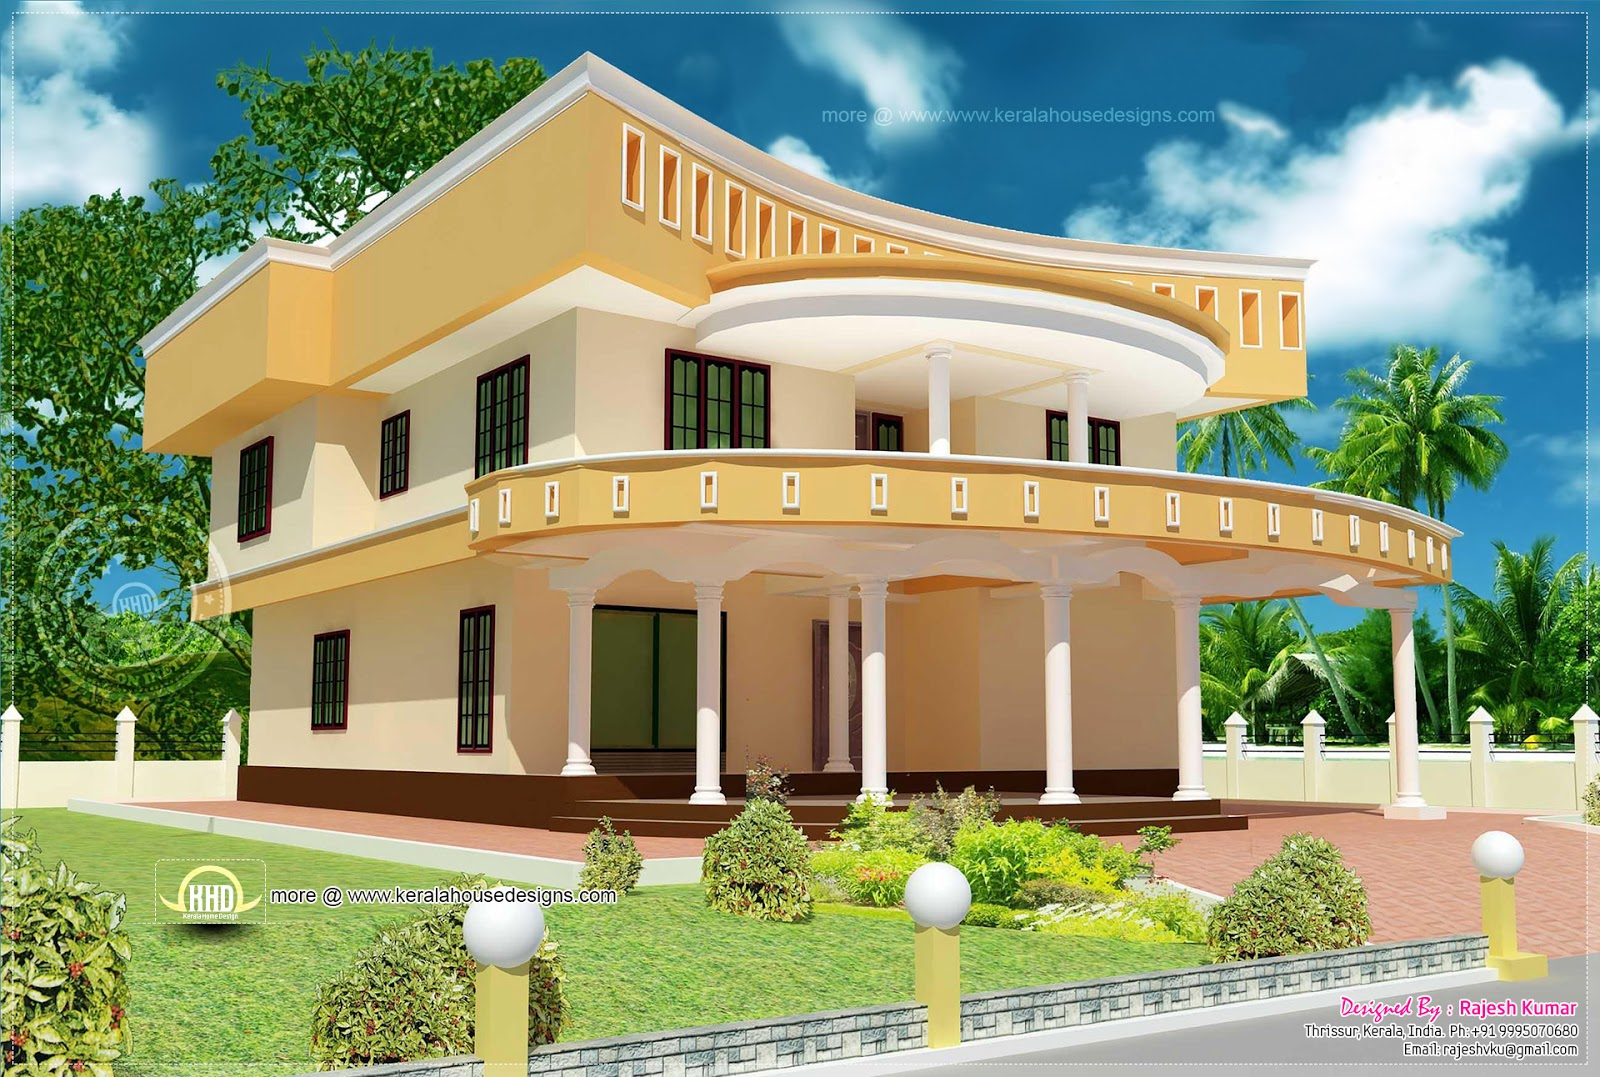 Unique home design in kerala kerala home design and for Interesting house designs